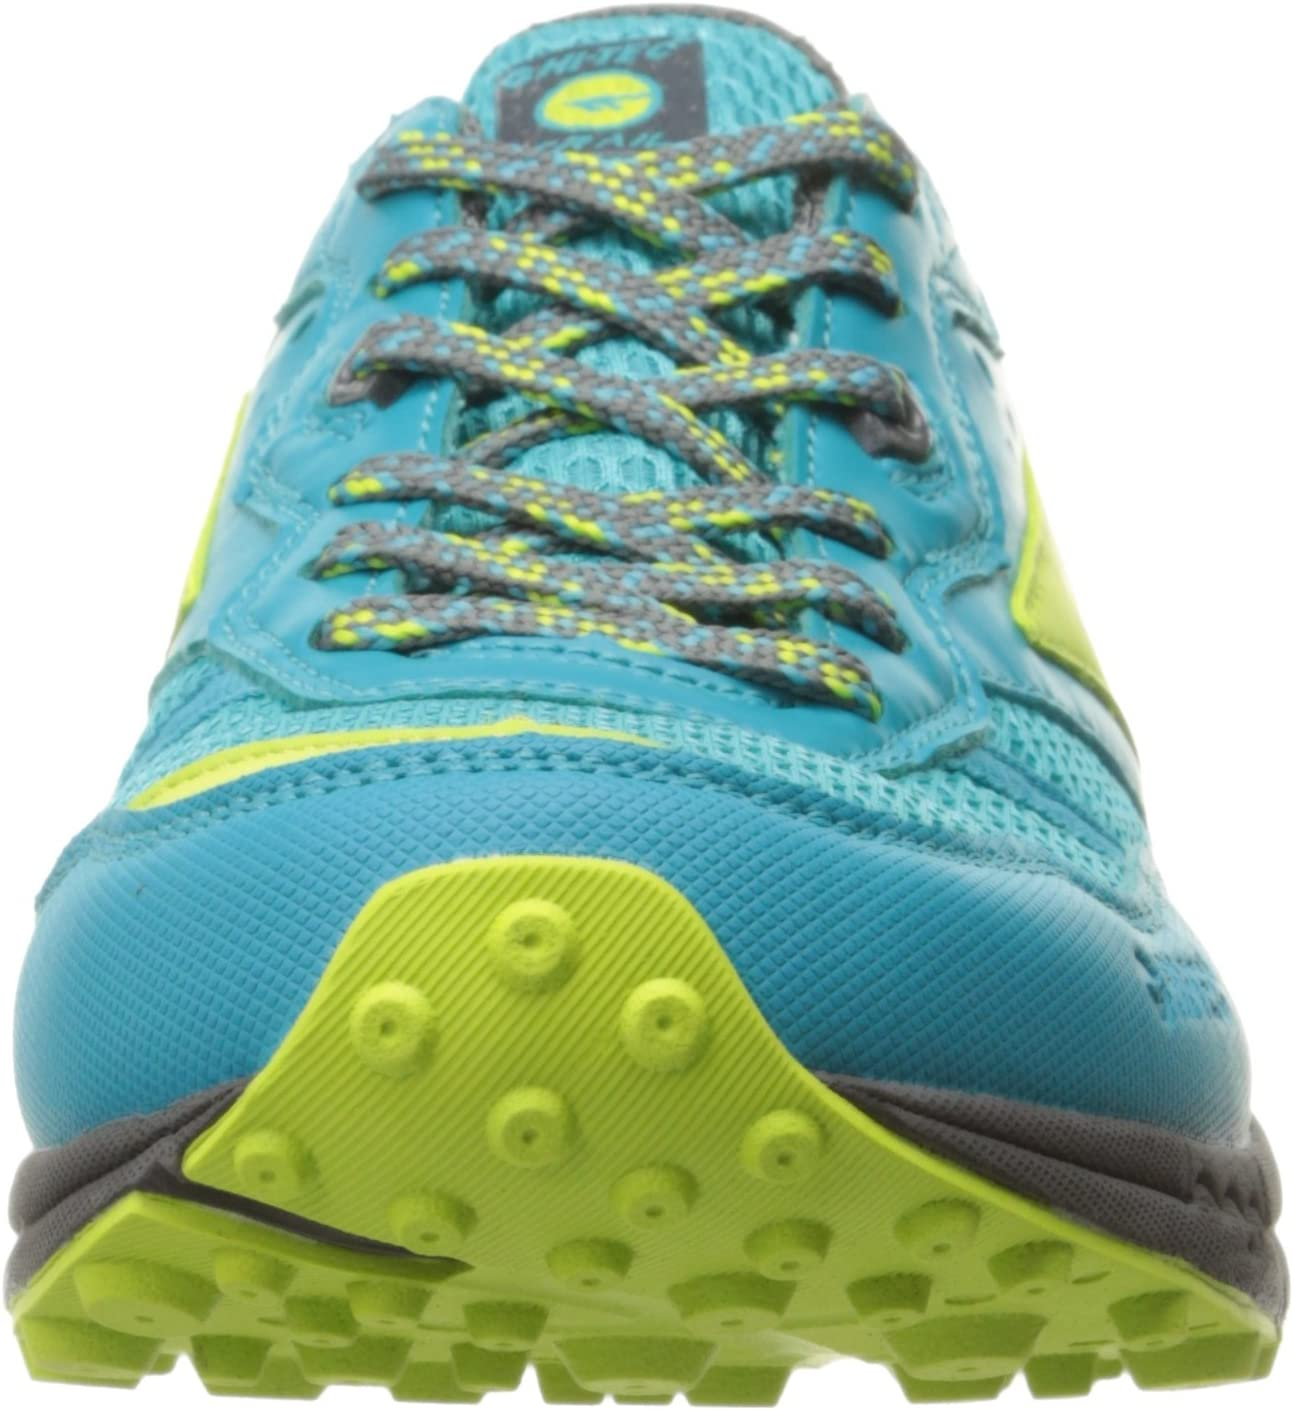 Hi-Tec Women's Badwater Trail Runner Tile Blue/Blue Curacao/Blarney